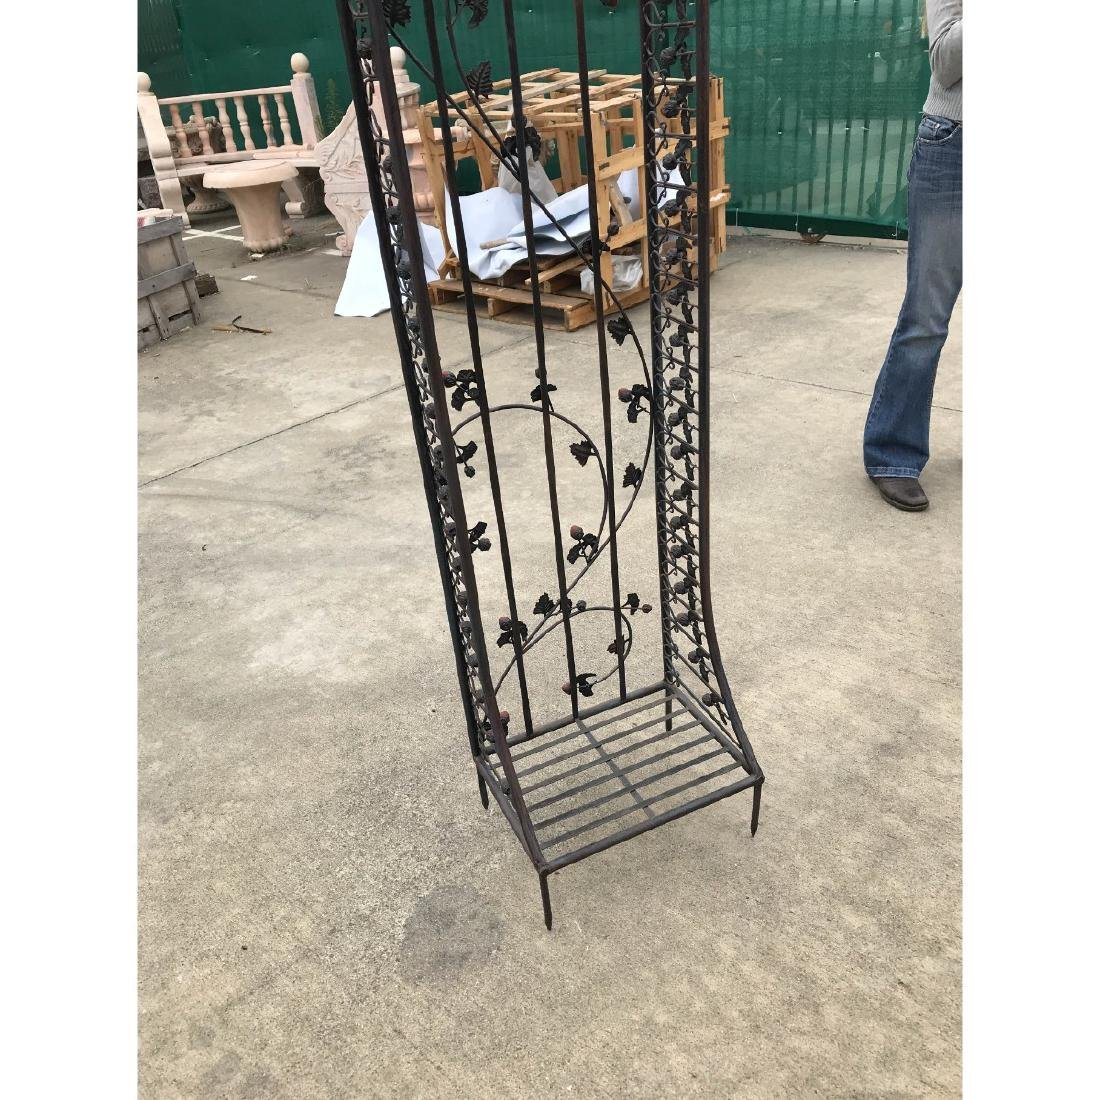 Wrought Iron Garden Arbor/Arch with Red Flowers - 9